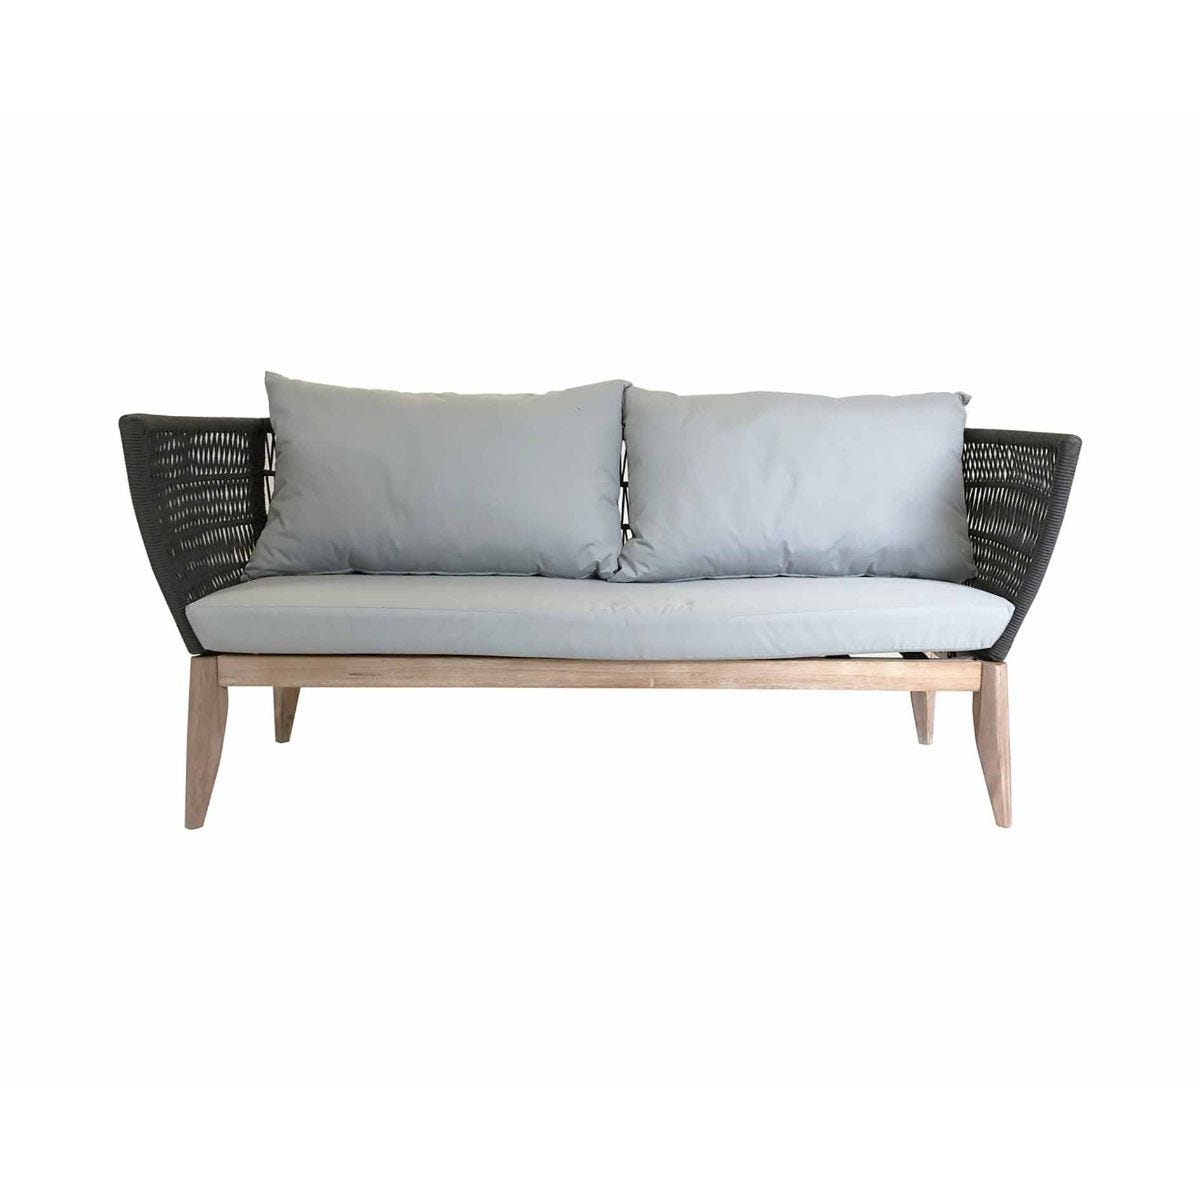 Charles Bentley Fisherman Sofa, Grey